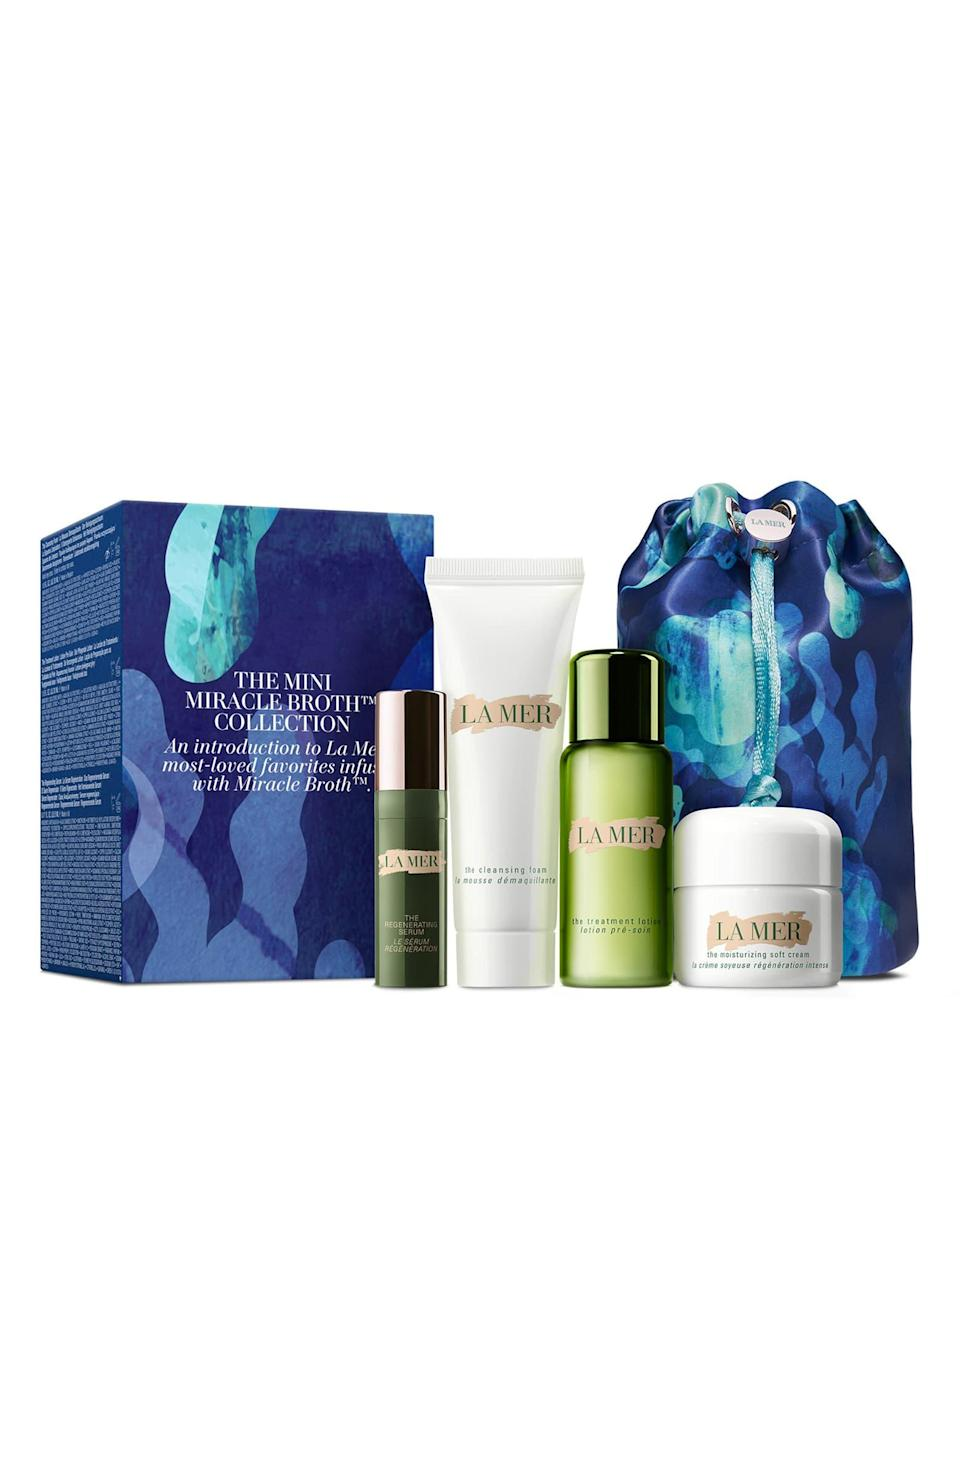 "<h3>La Mer The Mini Miracle Broth Collection</h3> <br>A little La Mer will go a long way to make your mom's skin look and feel incredible. (She's been warned – the stuff can be hard to quit.) <br><br><strong>La Mer</strong> The Mini Miracle Broth™ Collection, $, available at <a href=""https://go.skimresources.com/?id=30283X879131&url=https%3A%2F%2Fshop.nordstrom.com%2Fs%2Fla-mer-the-mini-miracle-broth-collection-nordstrom-exclusive-208-value%2F5522982%2Ffull"" rel=""nofollow noopener"" target=""_blank"" data-ylk=""slk:Nordstrom"" class=""link rapid-noclick-resp"">Nordstrom</a><br>"